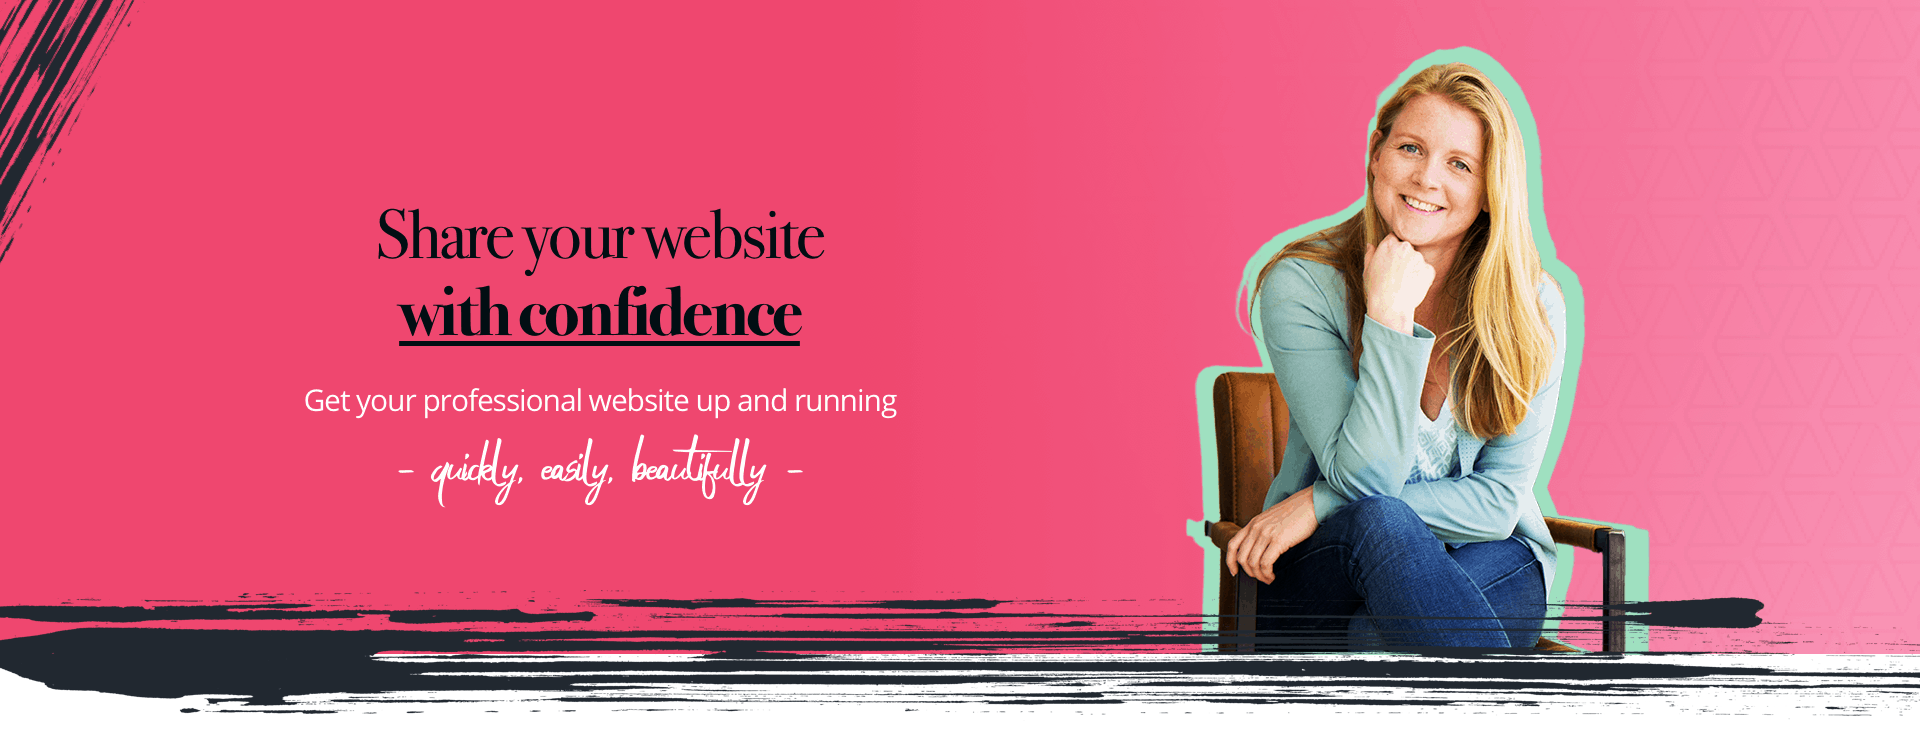 share your website with confidence